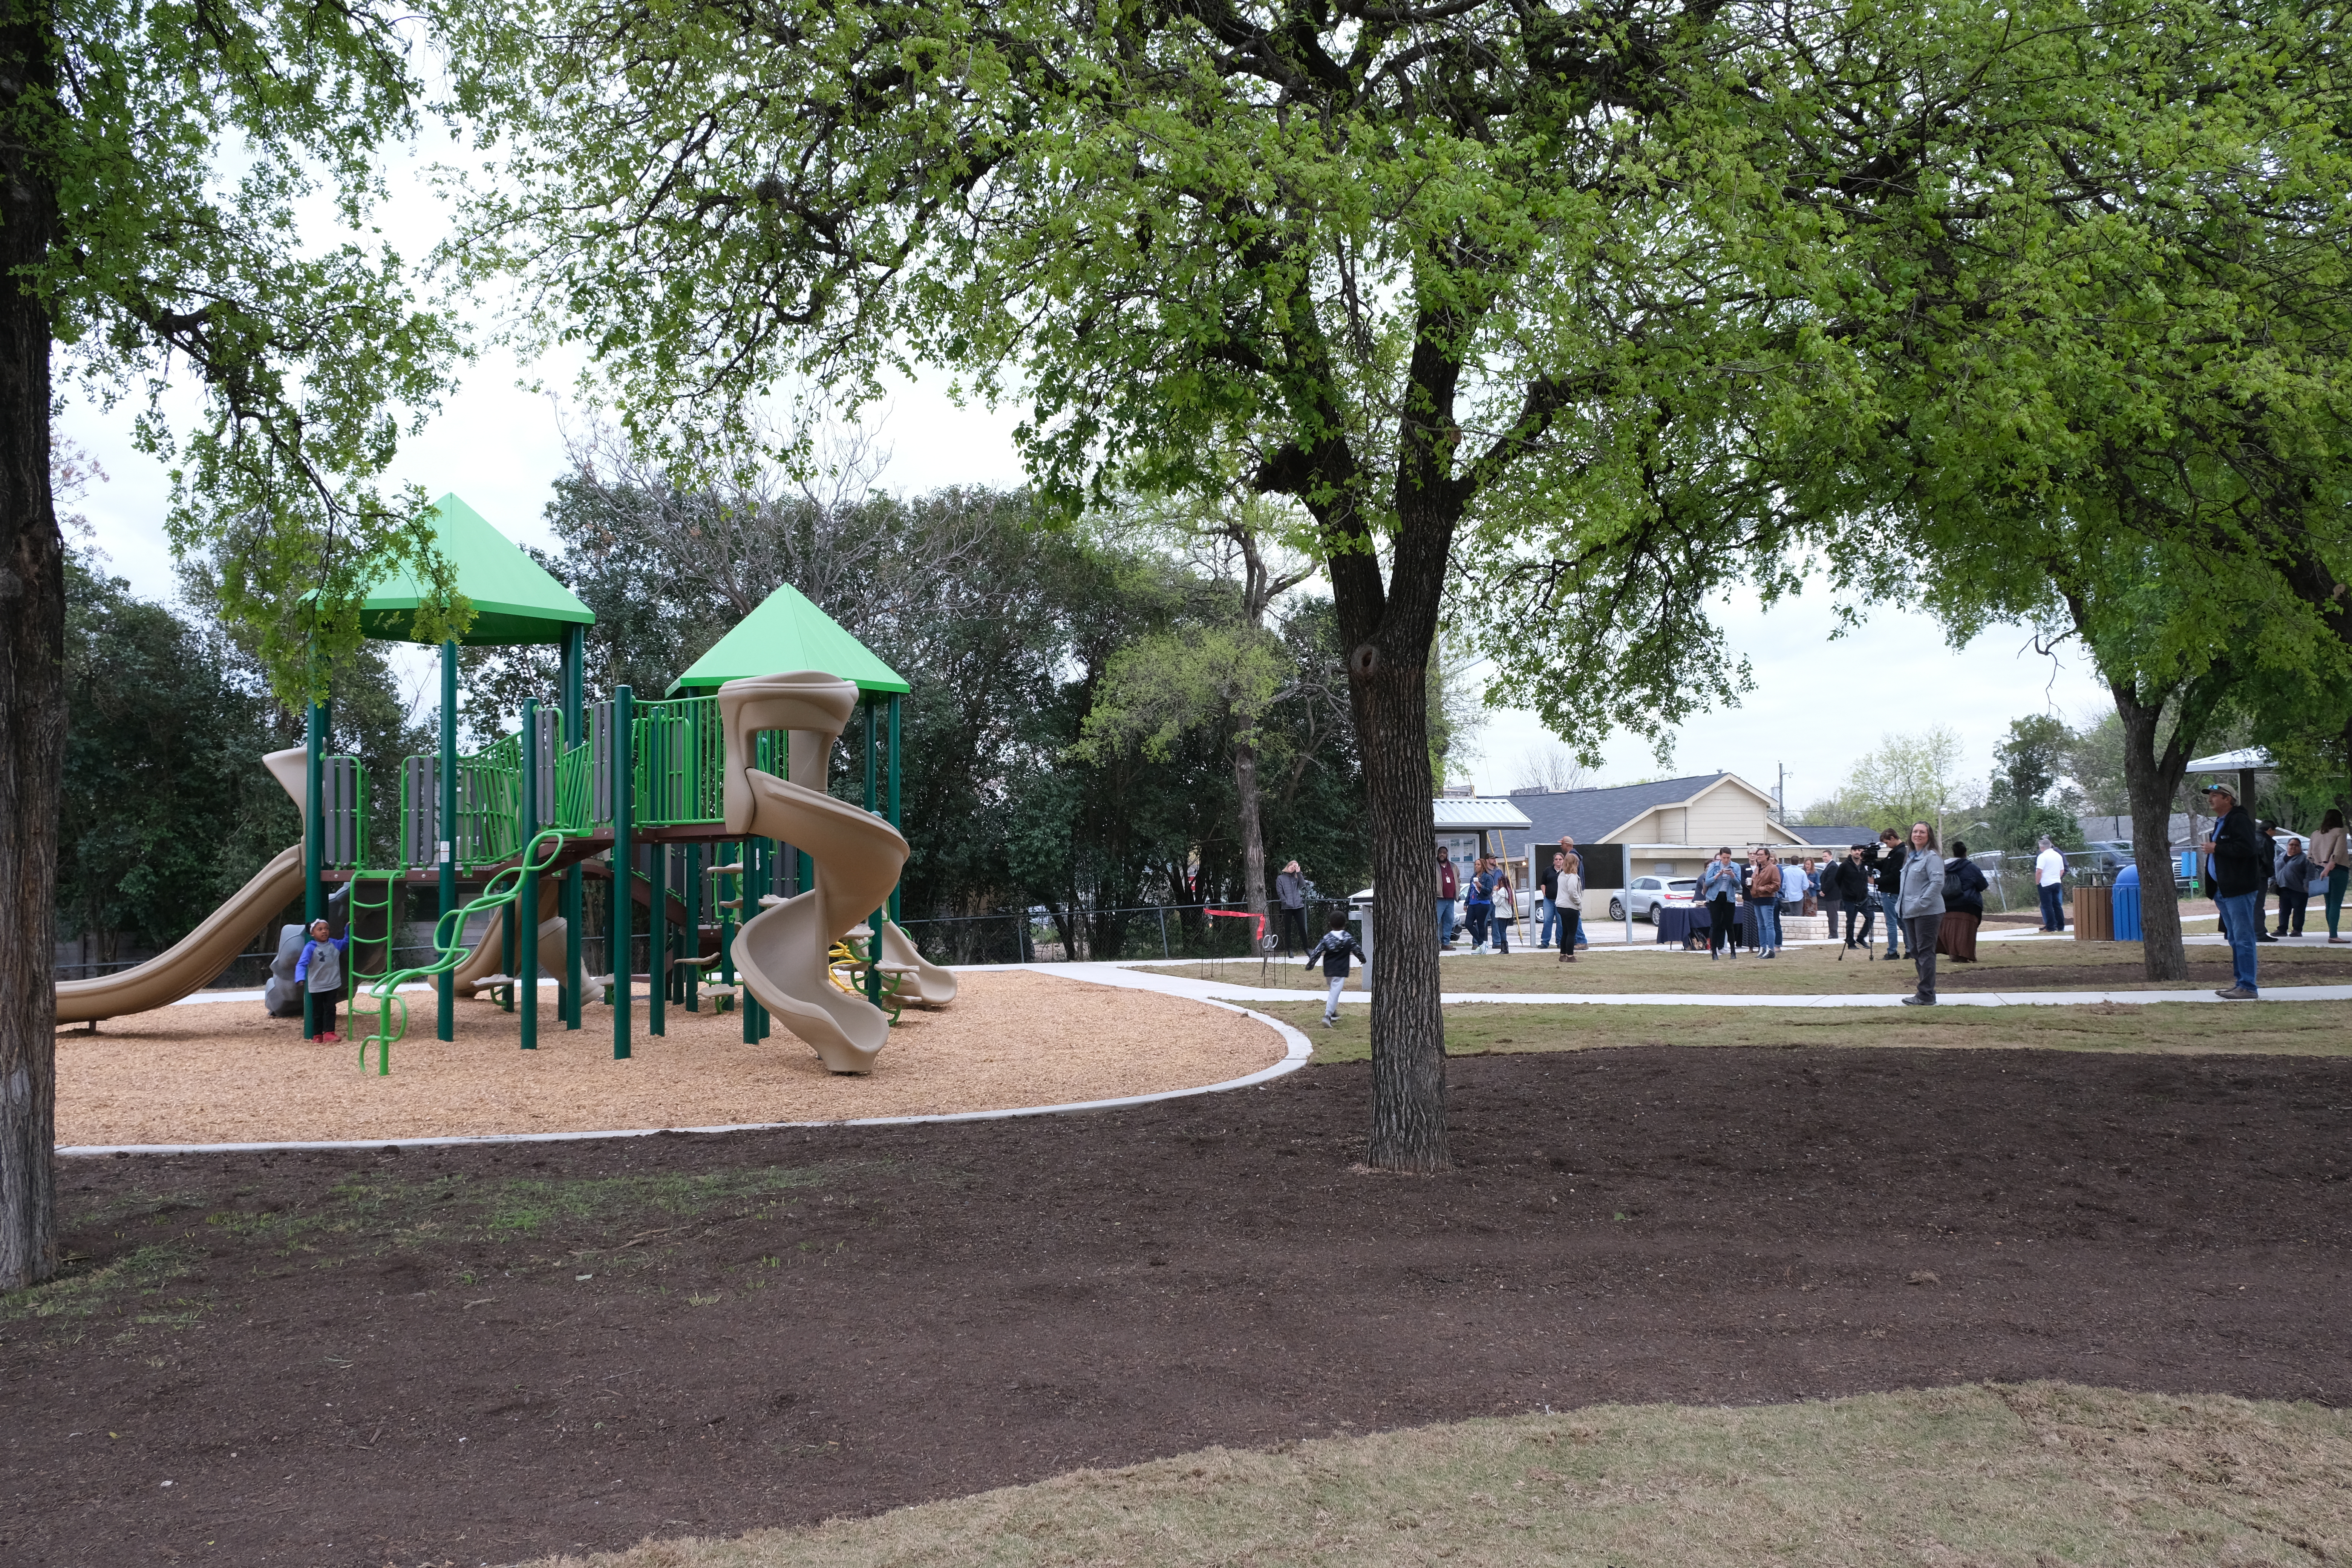 Family-focused pocket park breathes life into long-neglected space